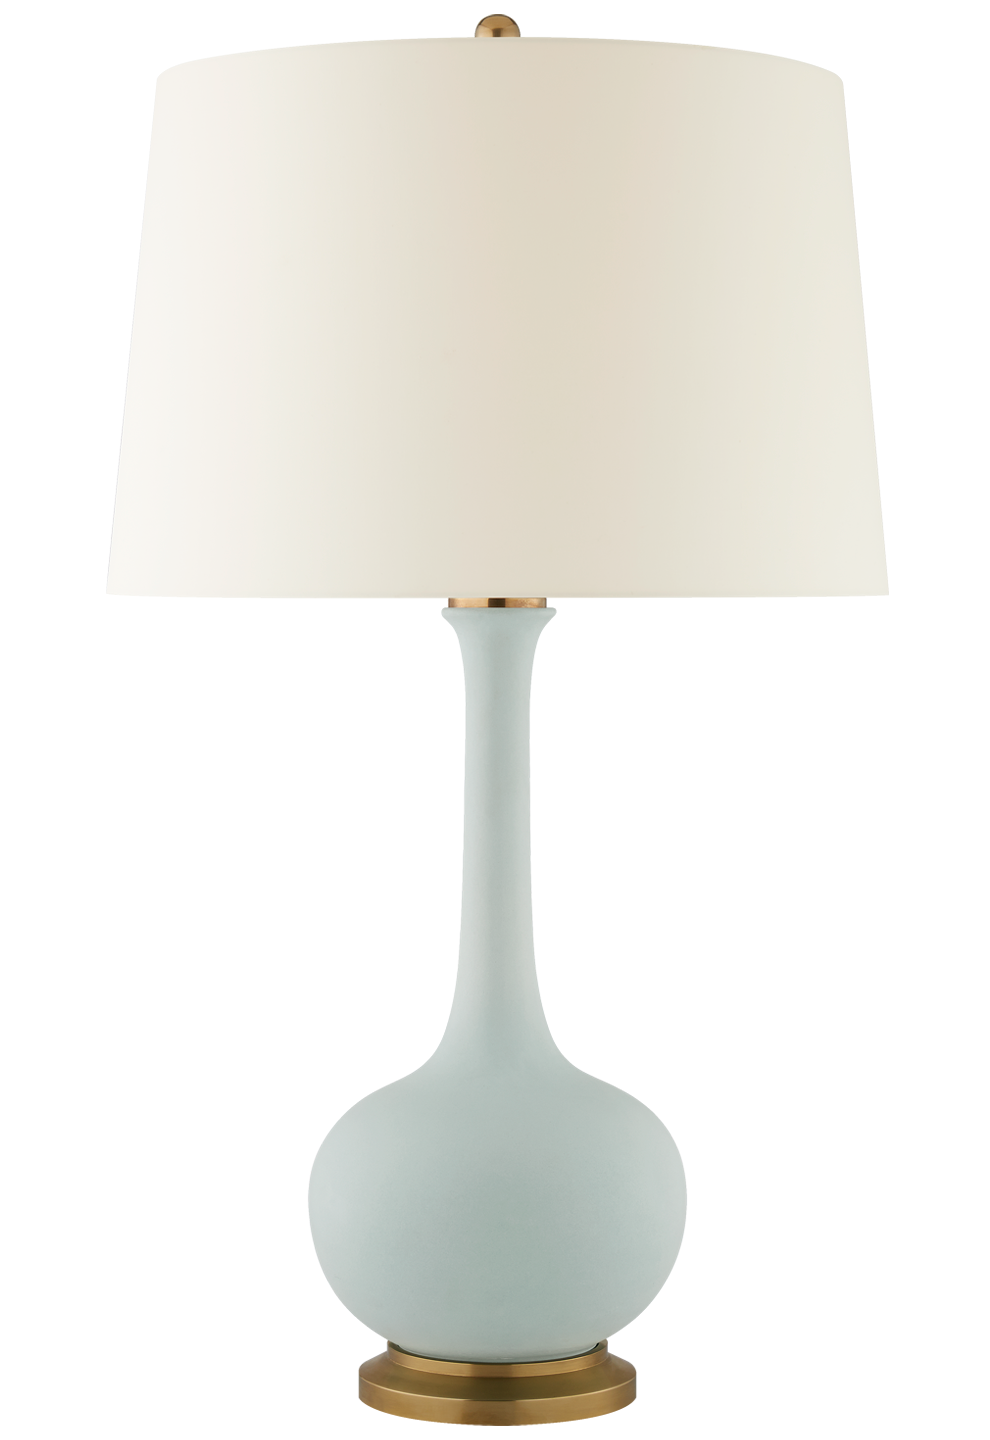 Coy Large Table Lamp Large Table Lamps Lamp Table Lamp